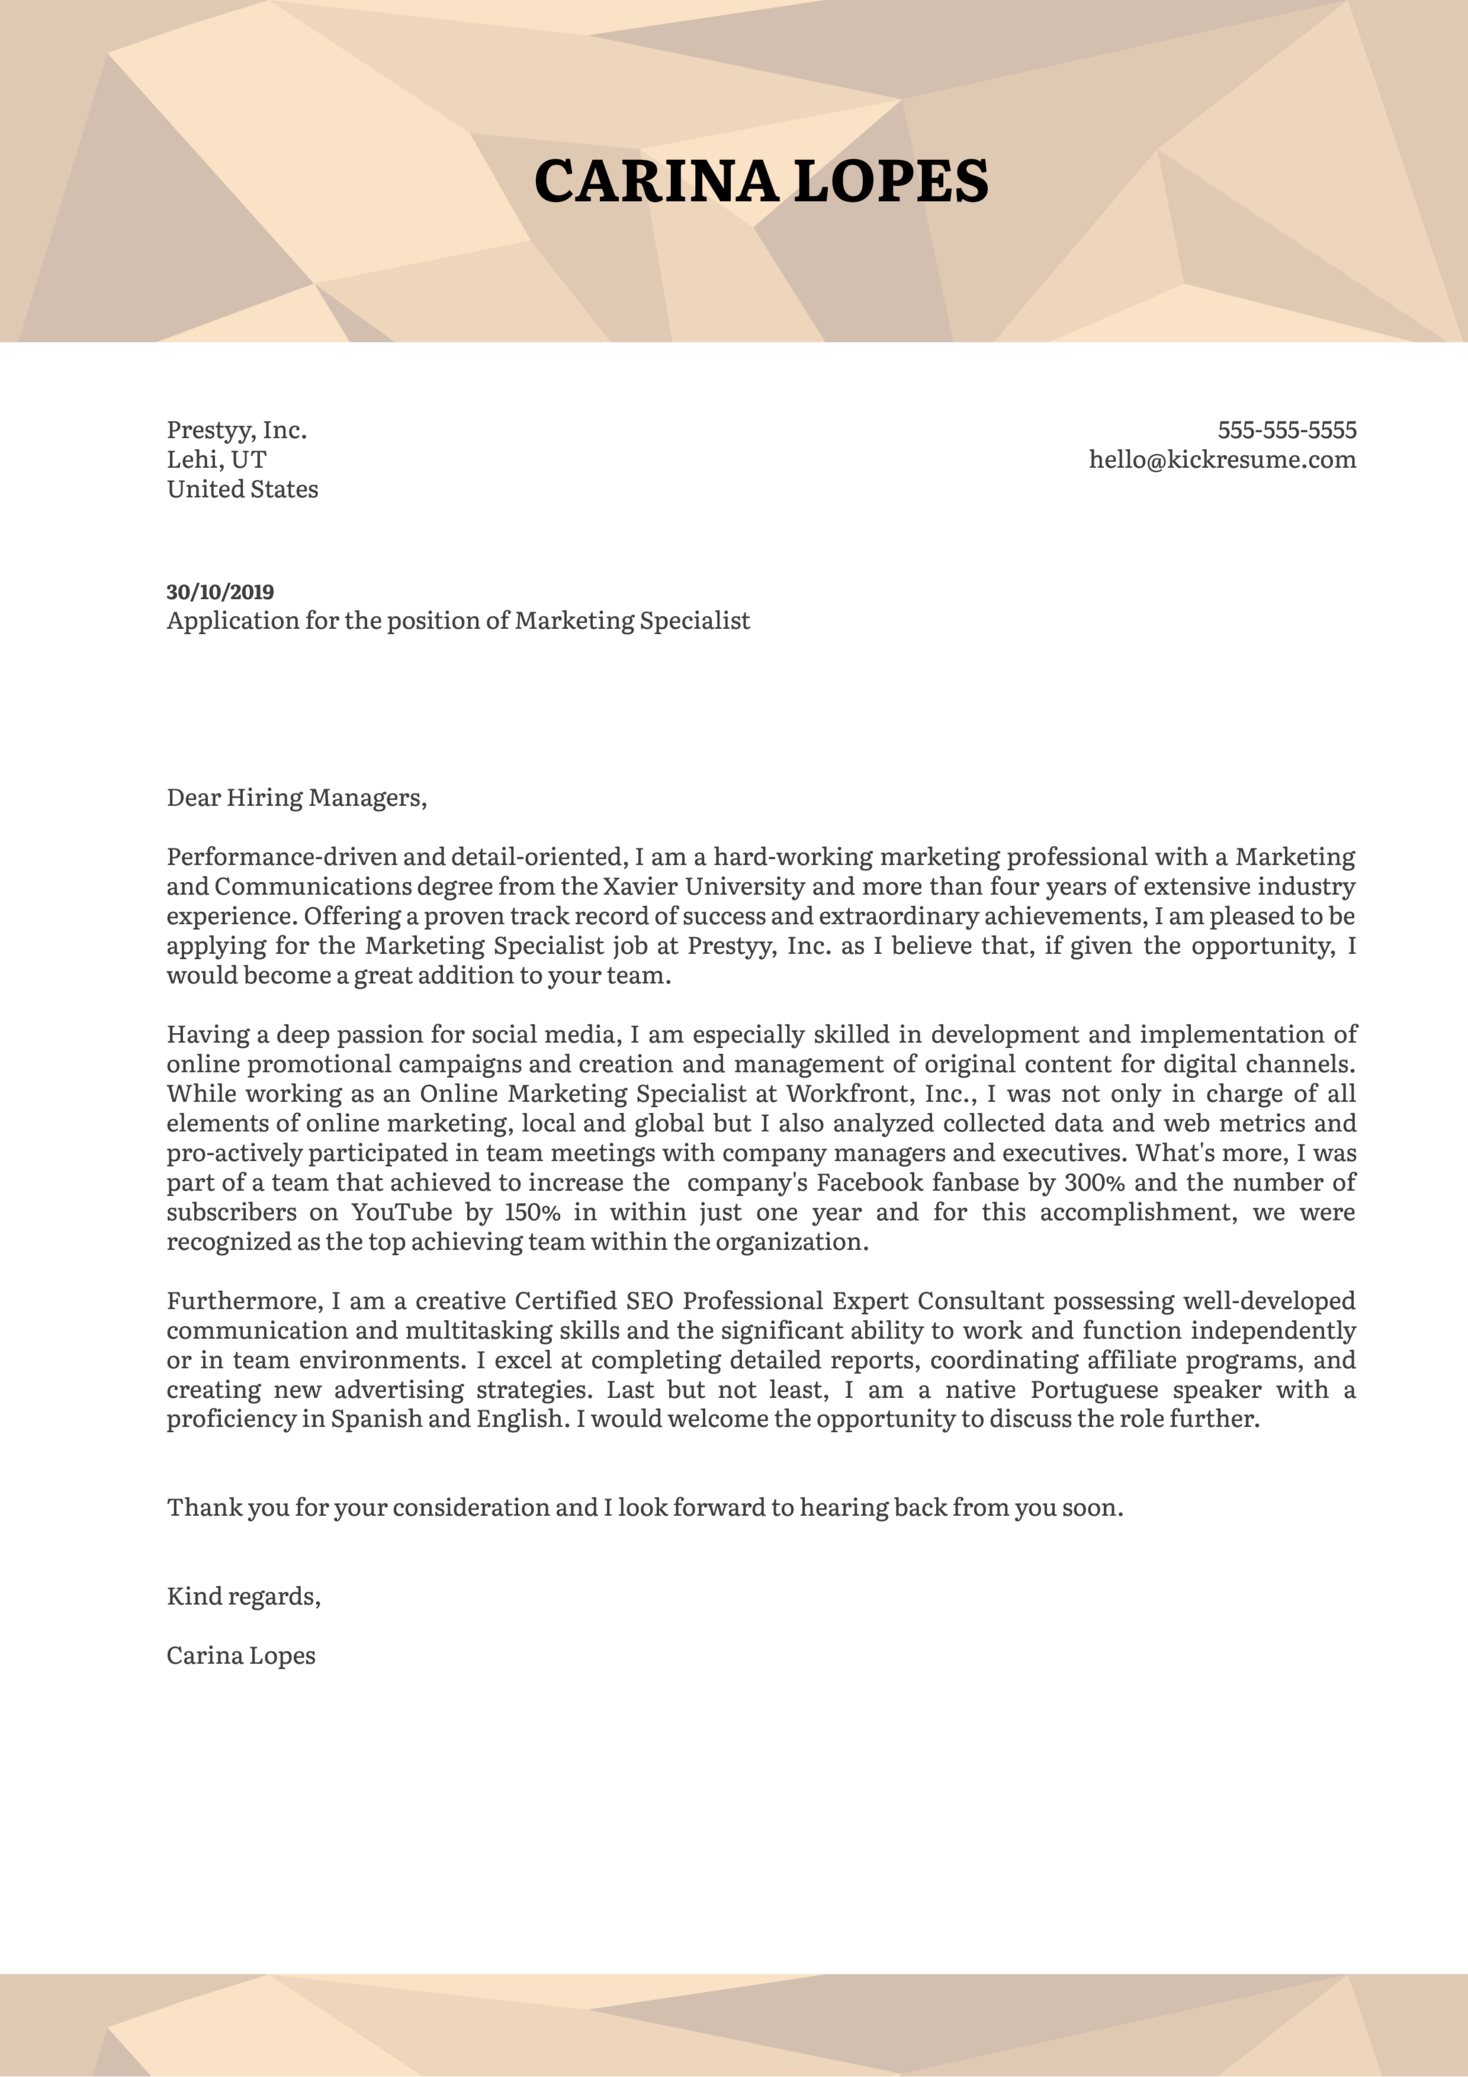 Marketing Specialist Cover Letter Template